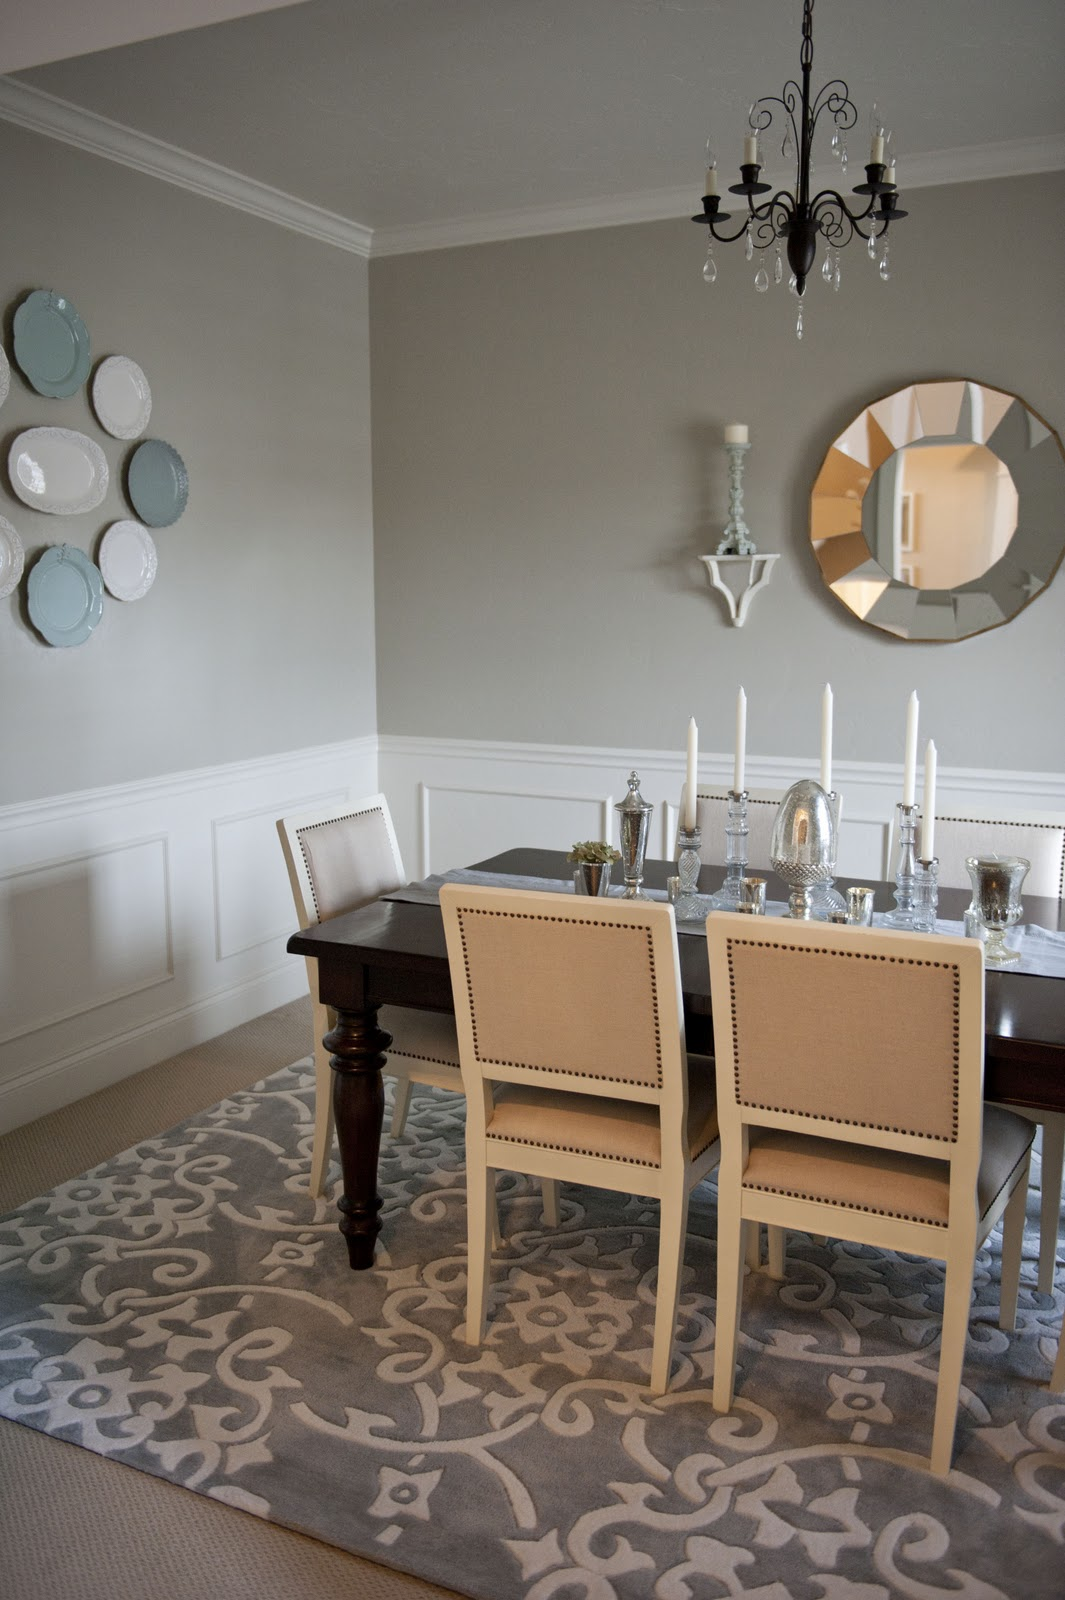 Sita montgomery interiors my home tour entry and dining room for My dining room